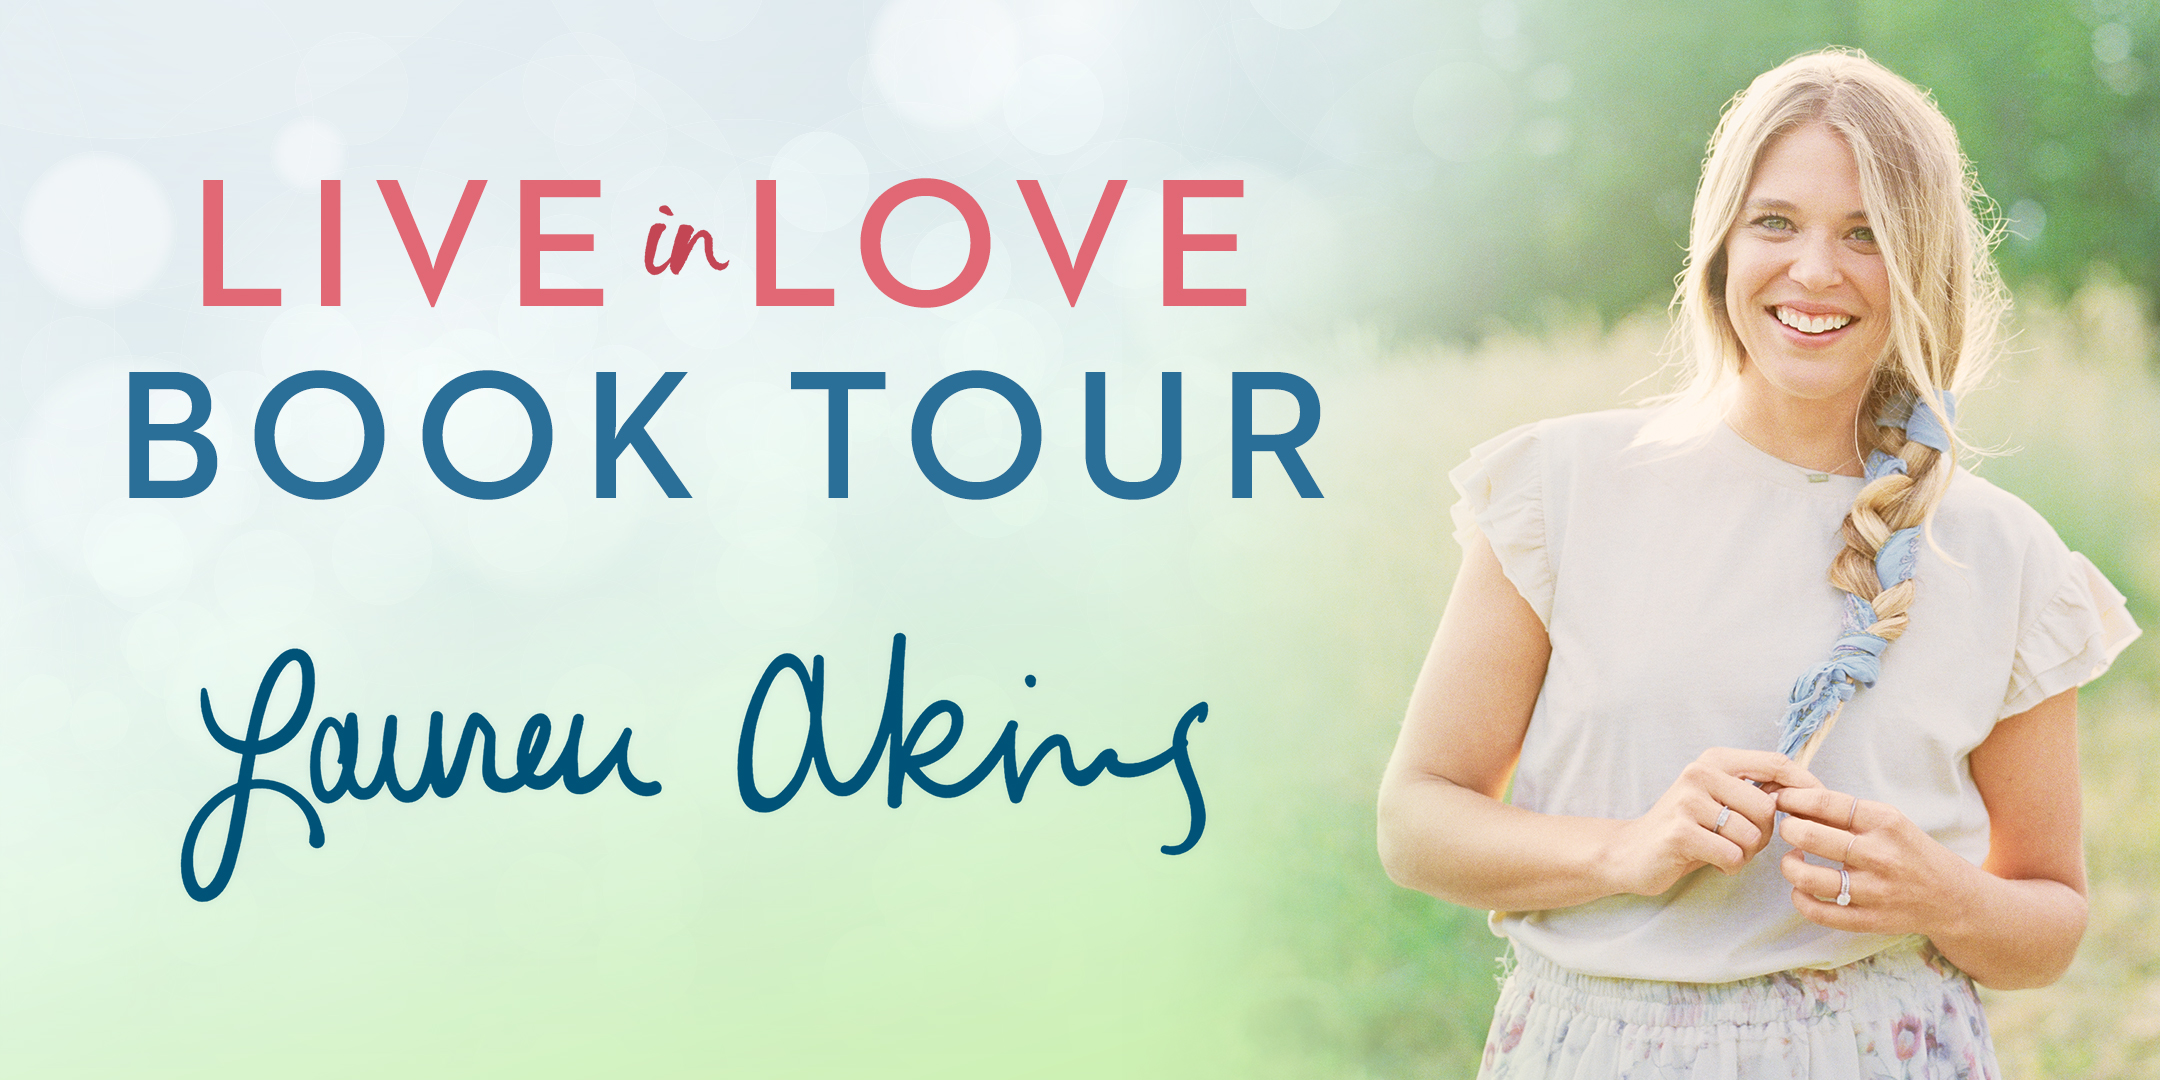 Book Launch: Live in Love by Lauren Akins